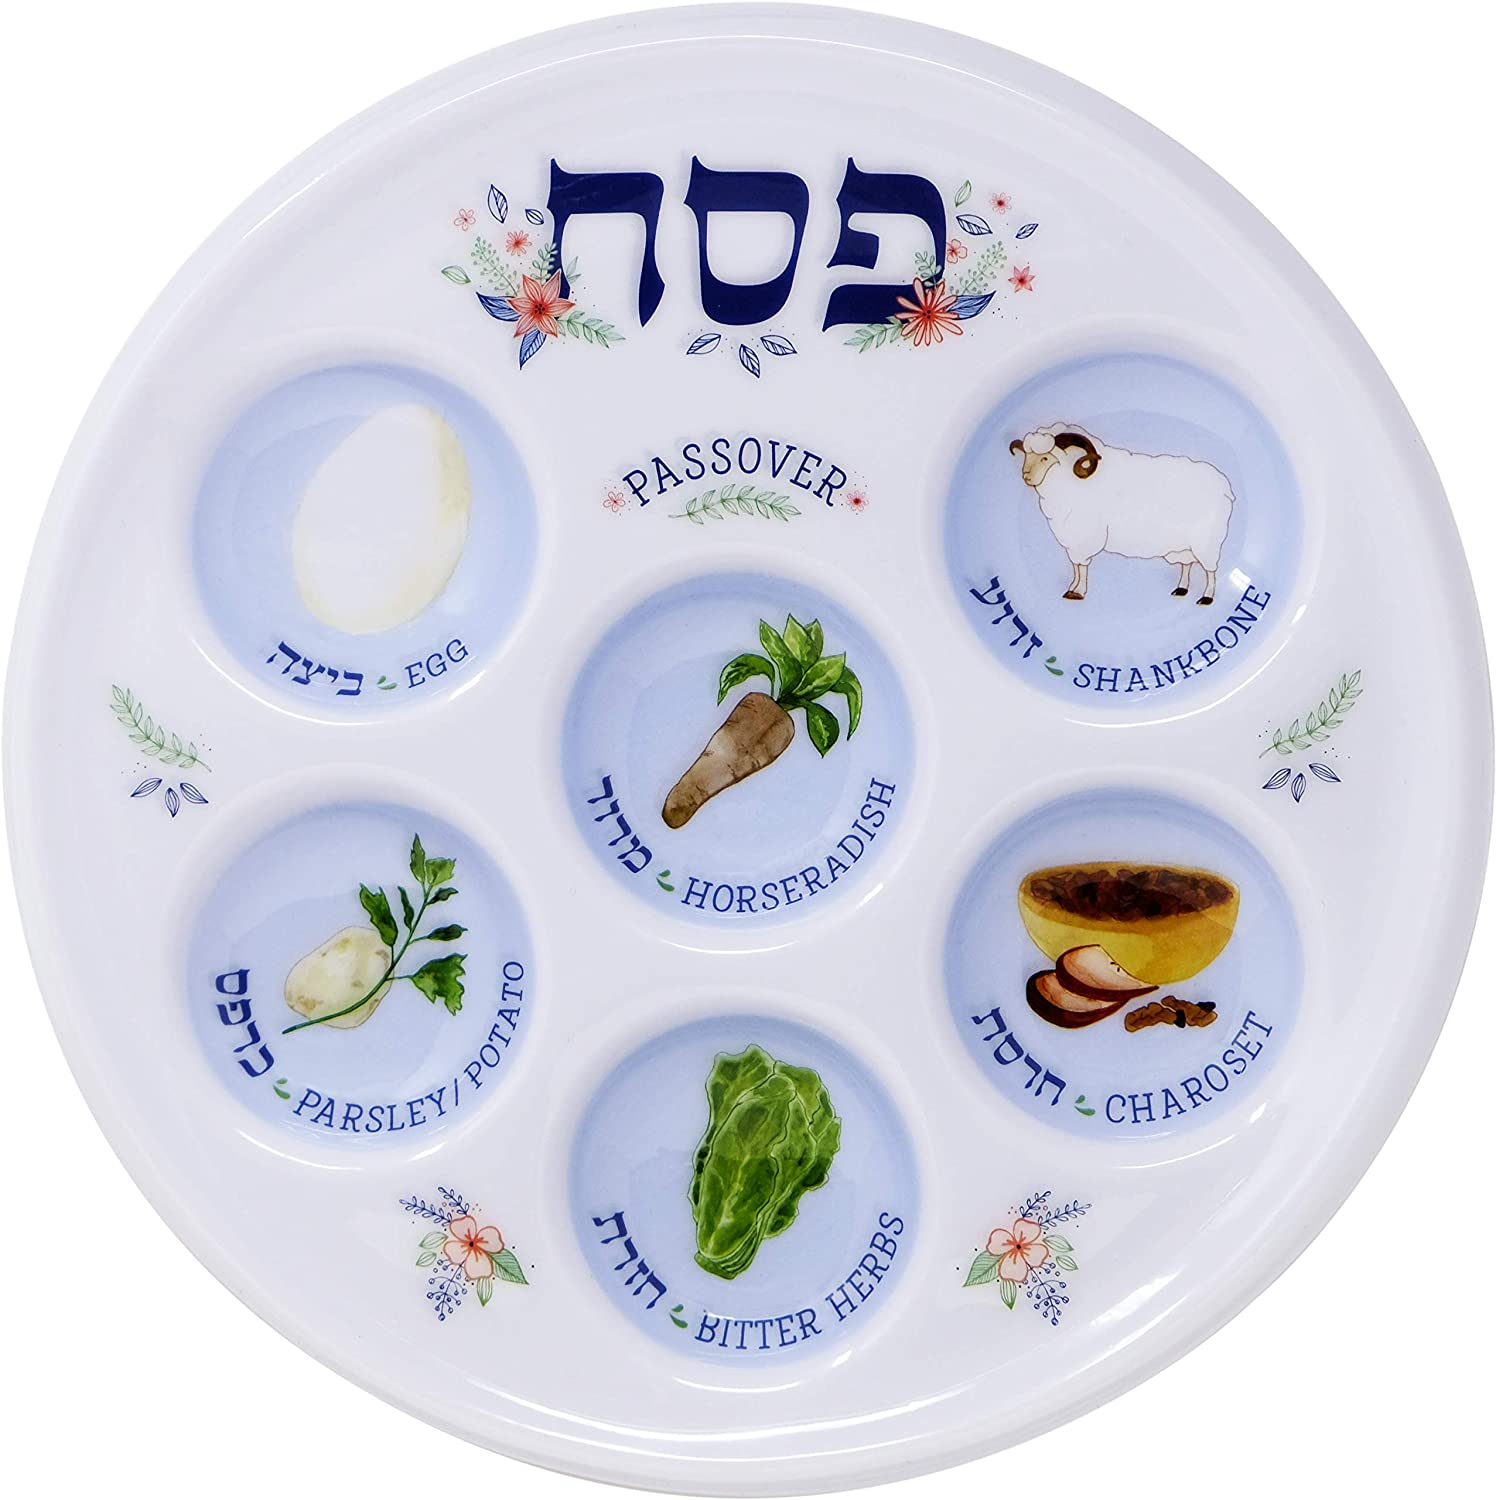 Passover Seder Plate Deluxe Quality Plastic 10' Disposable Plates (Pack of 10) The Dreidel Company